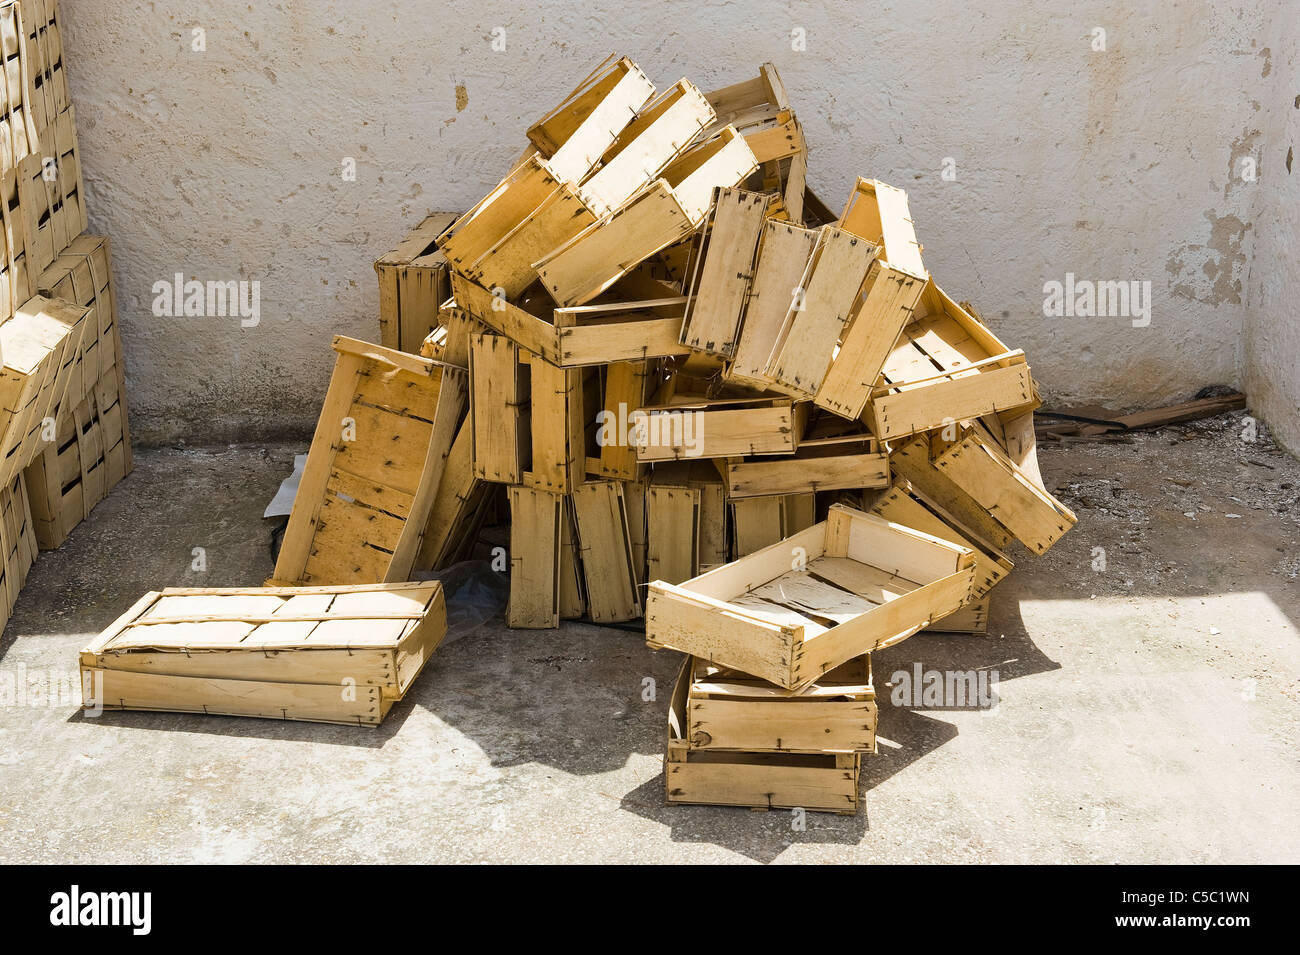 Stack of fish boxes - Stock Image